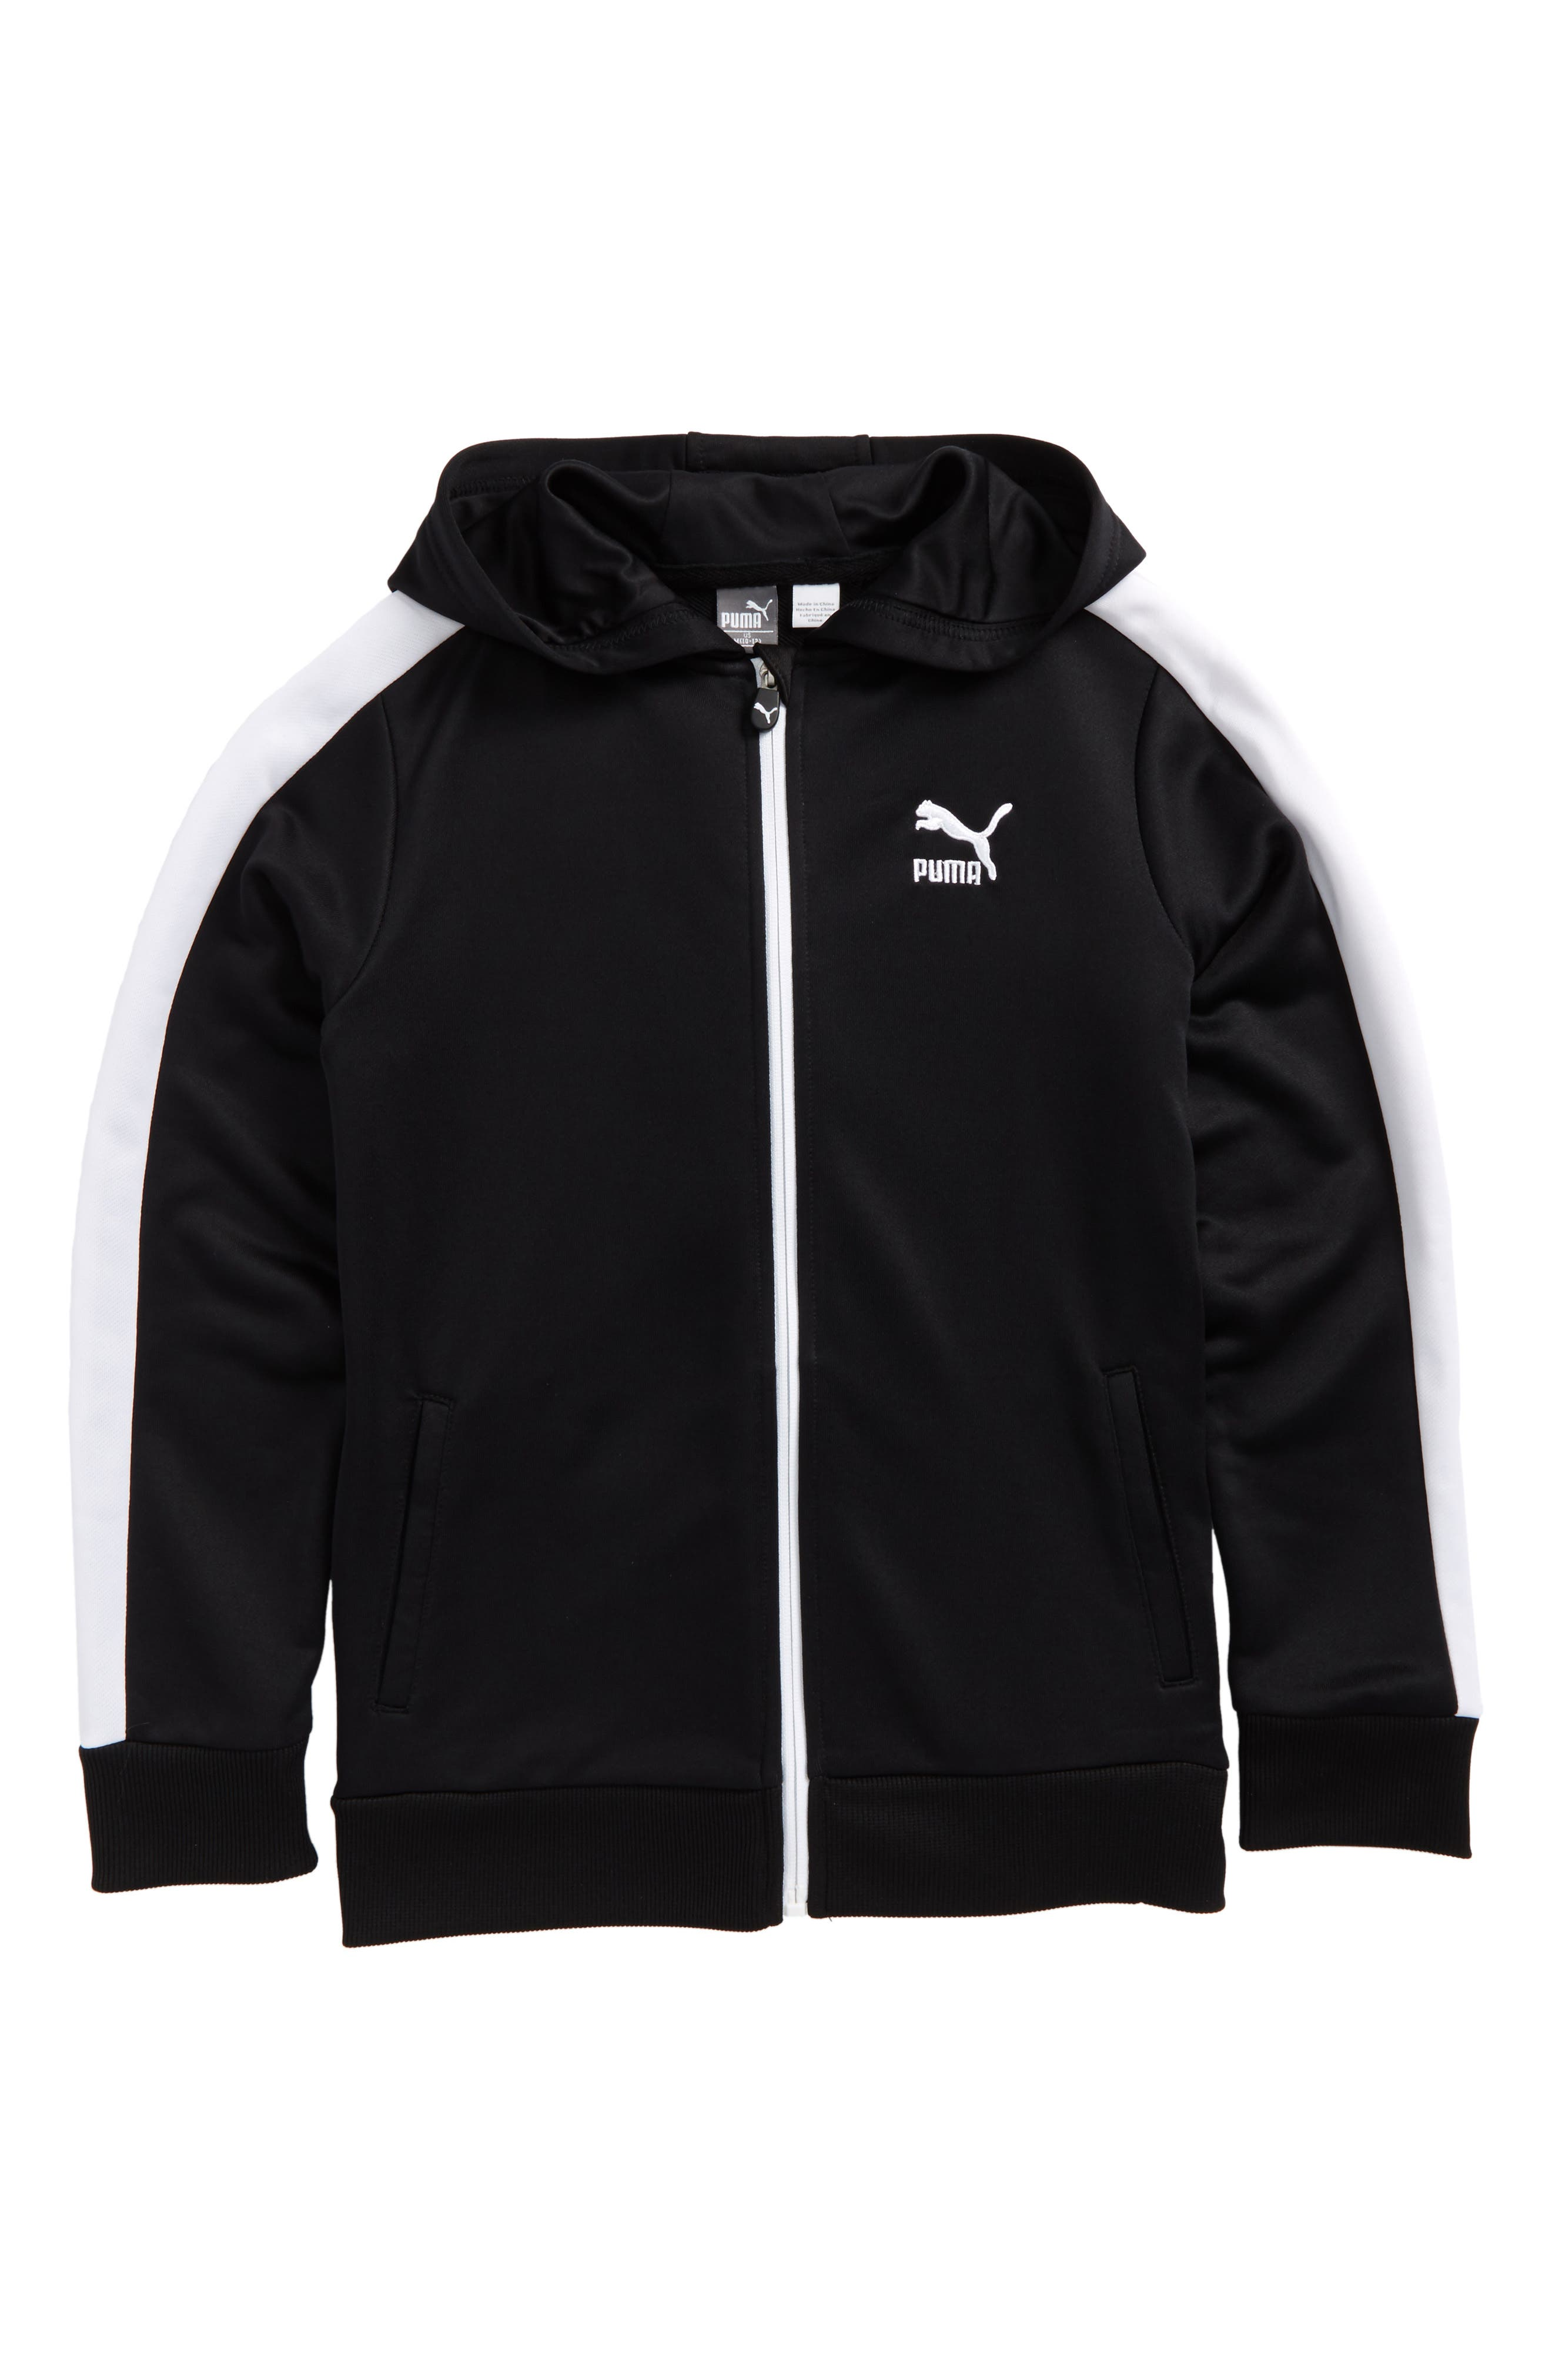 T7 Zip Hoodie,                             Main thumbnail 1, color,                             Puma Black